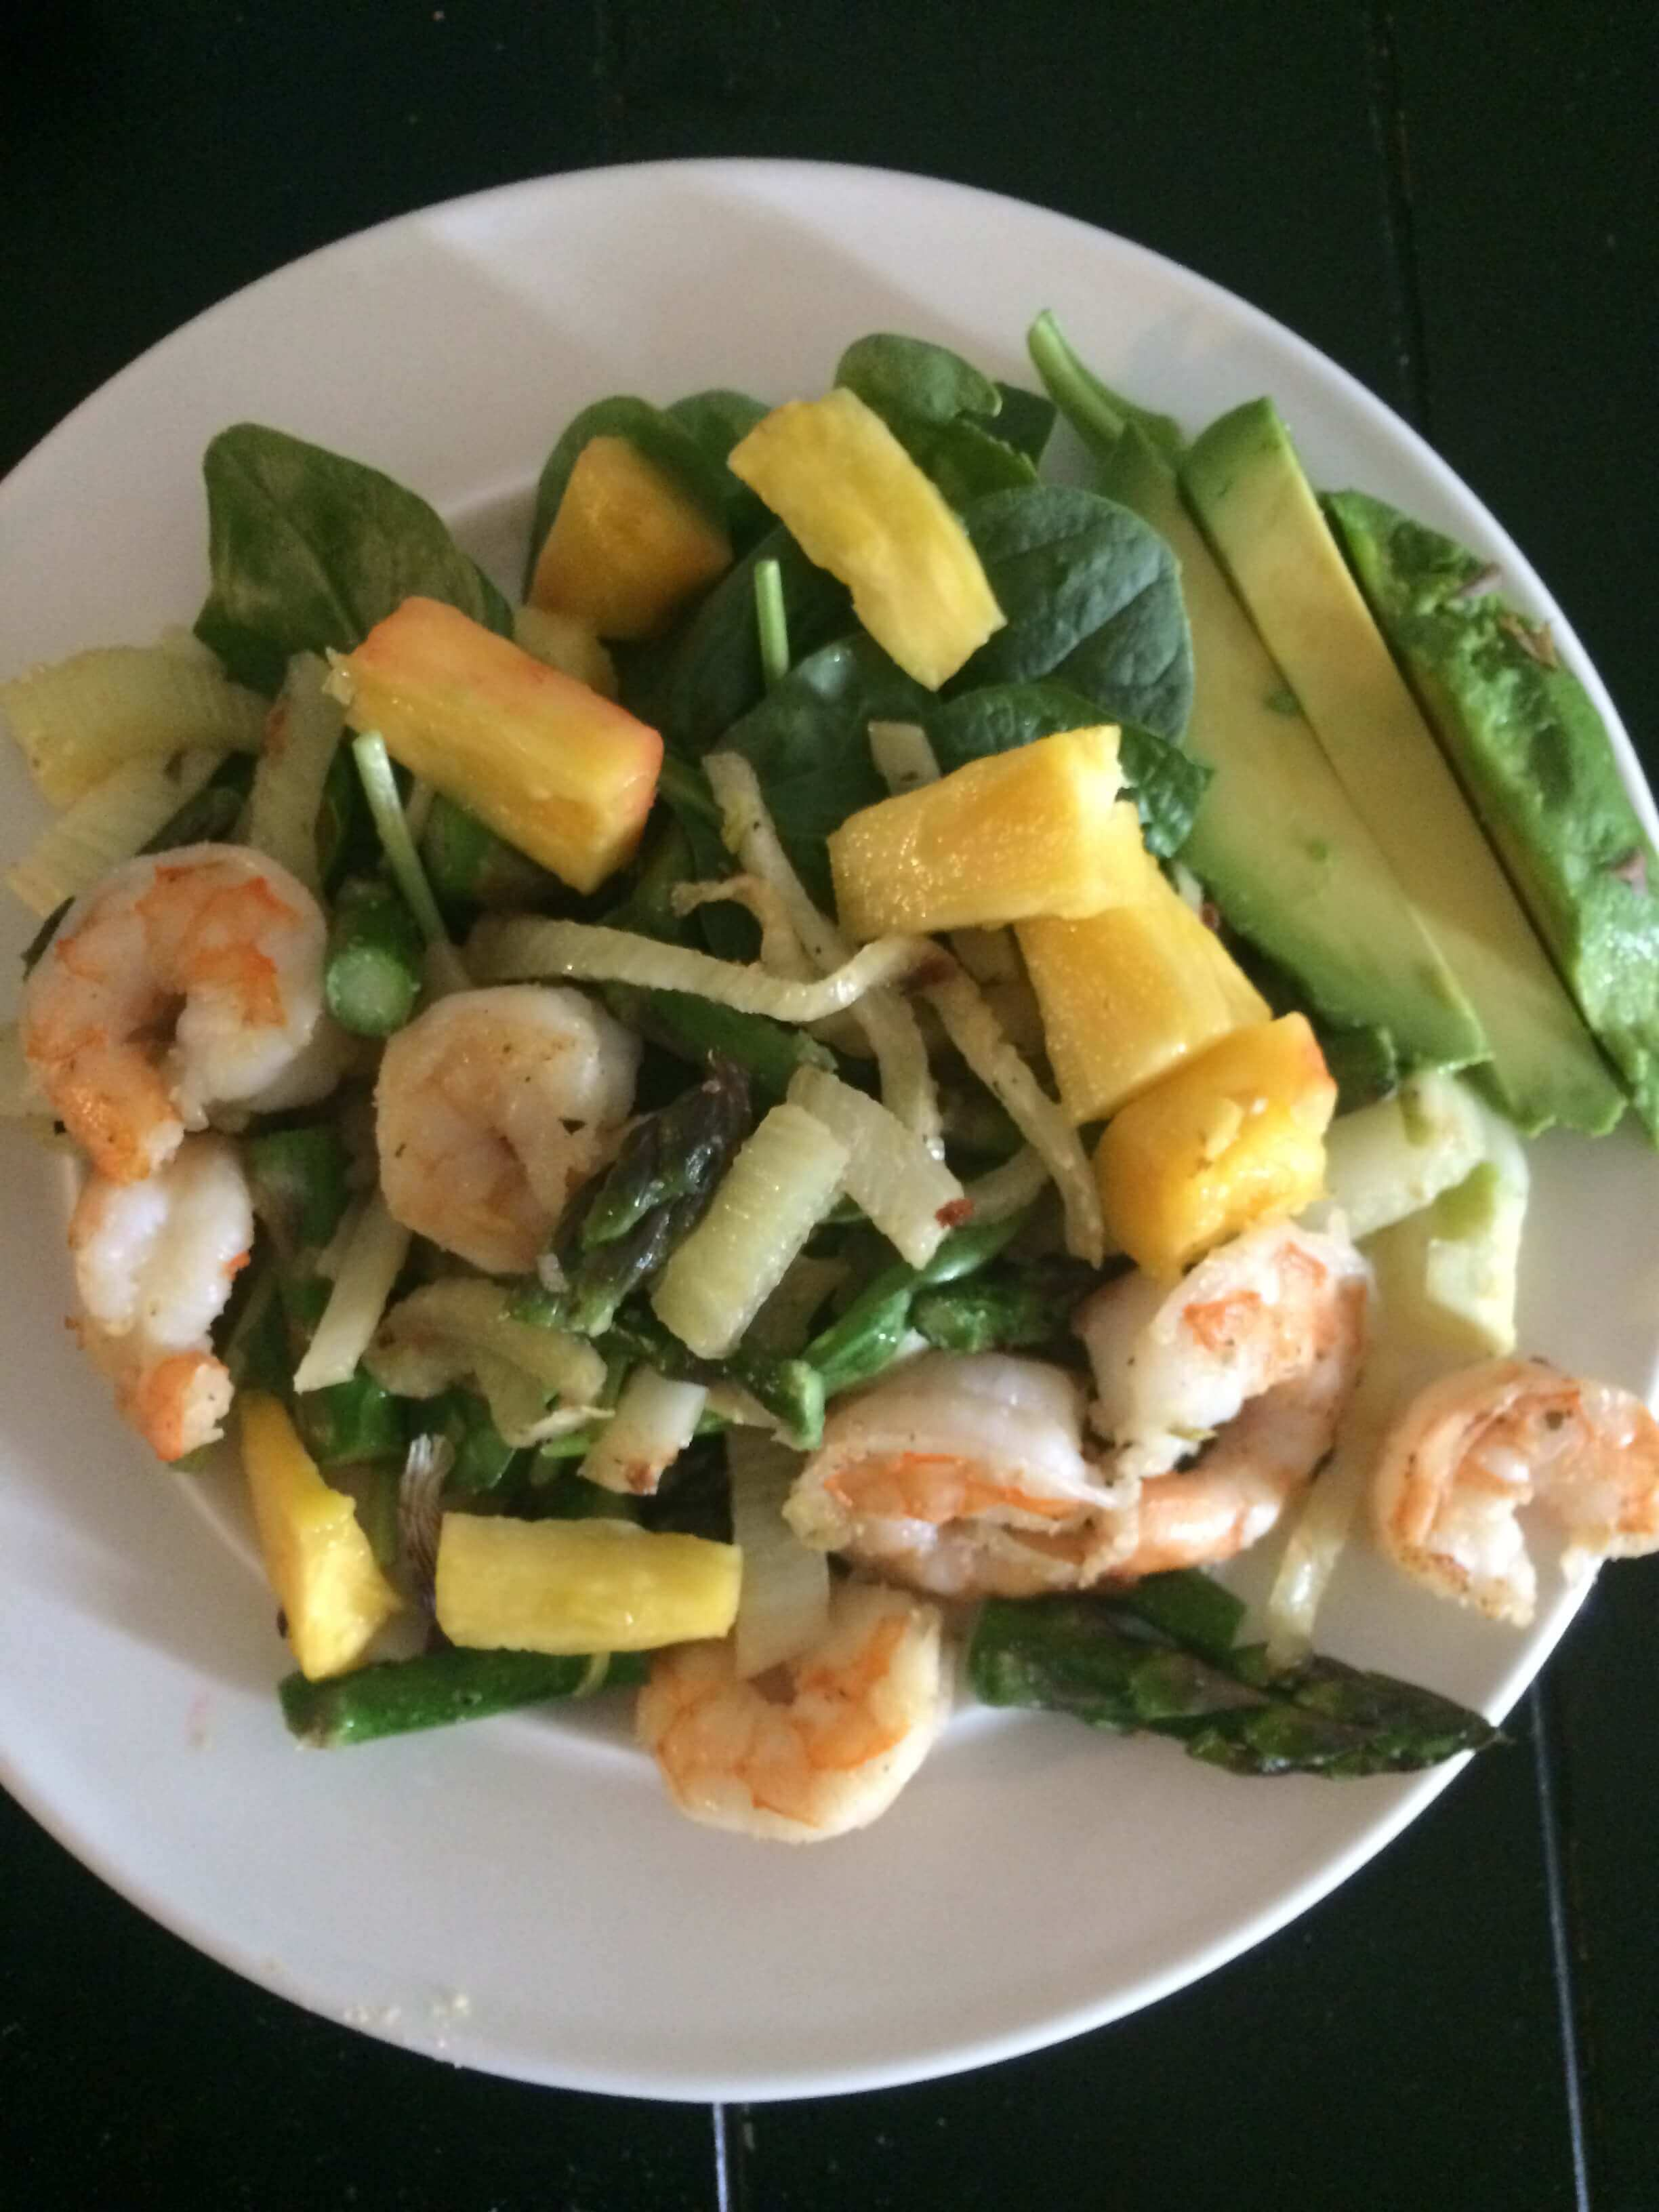 Summer Recipe: Hot & Cold Fennel Shrimp Salad